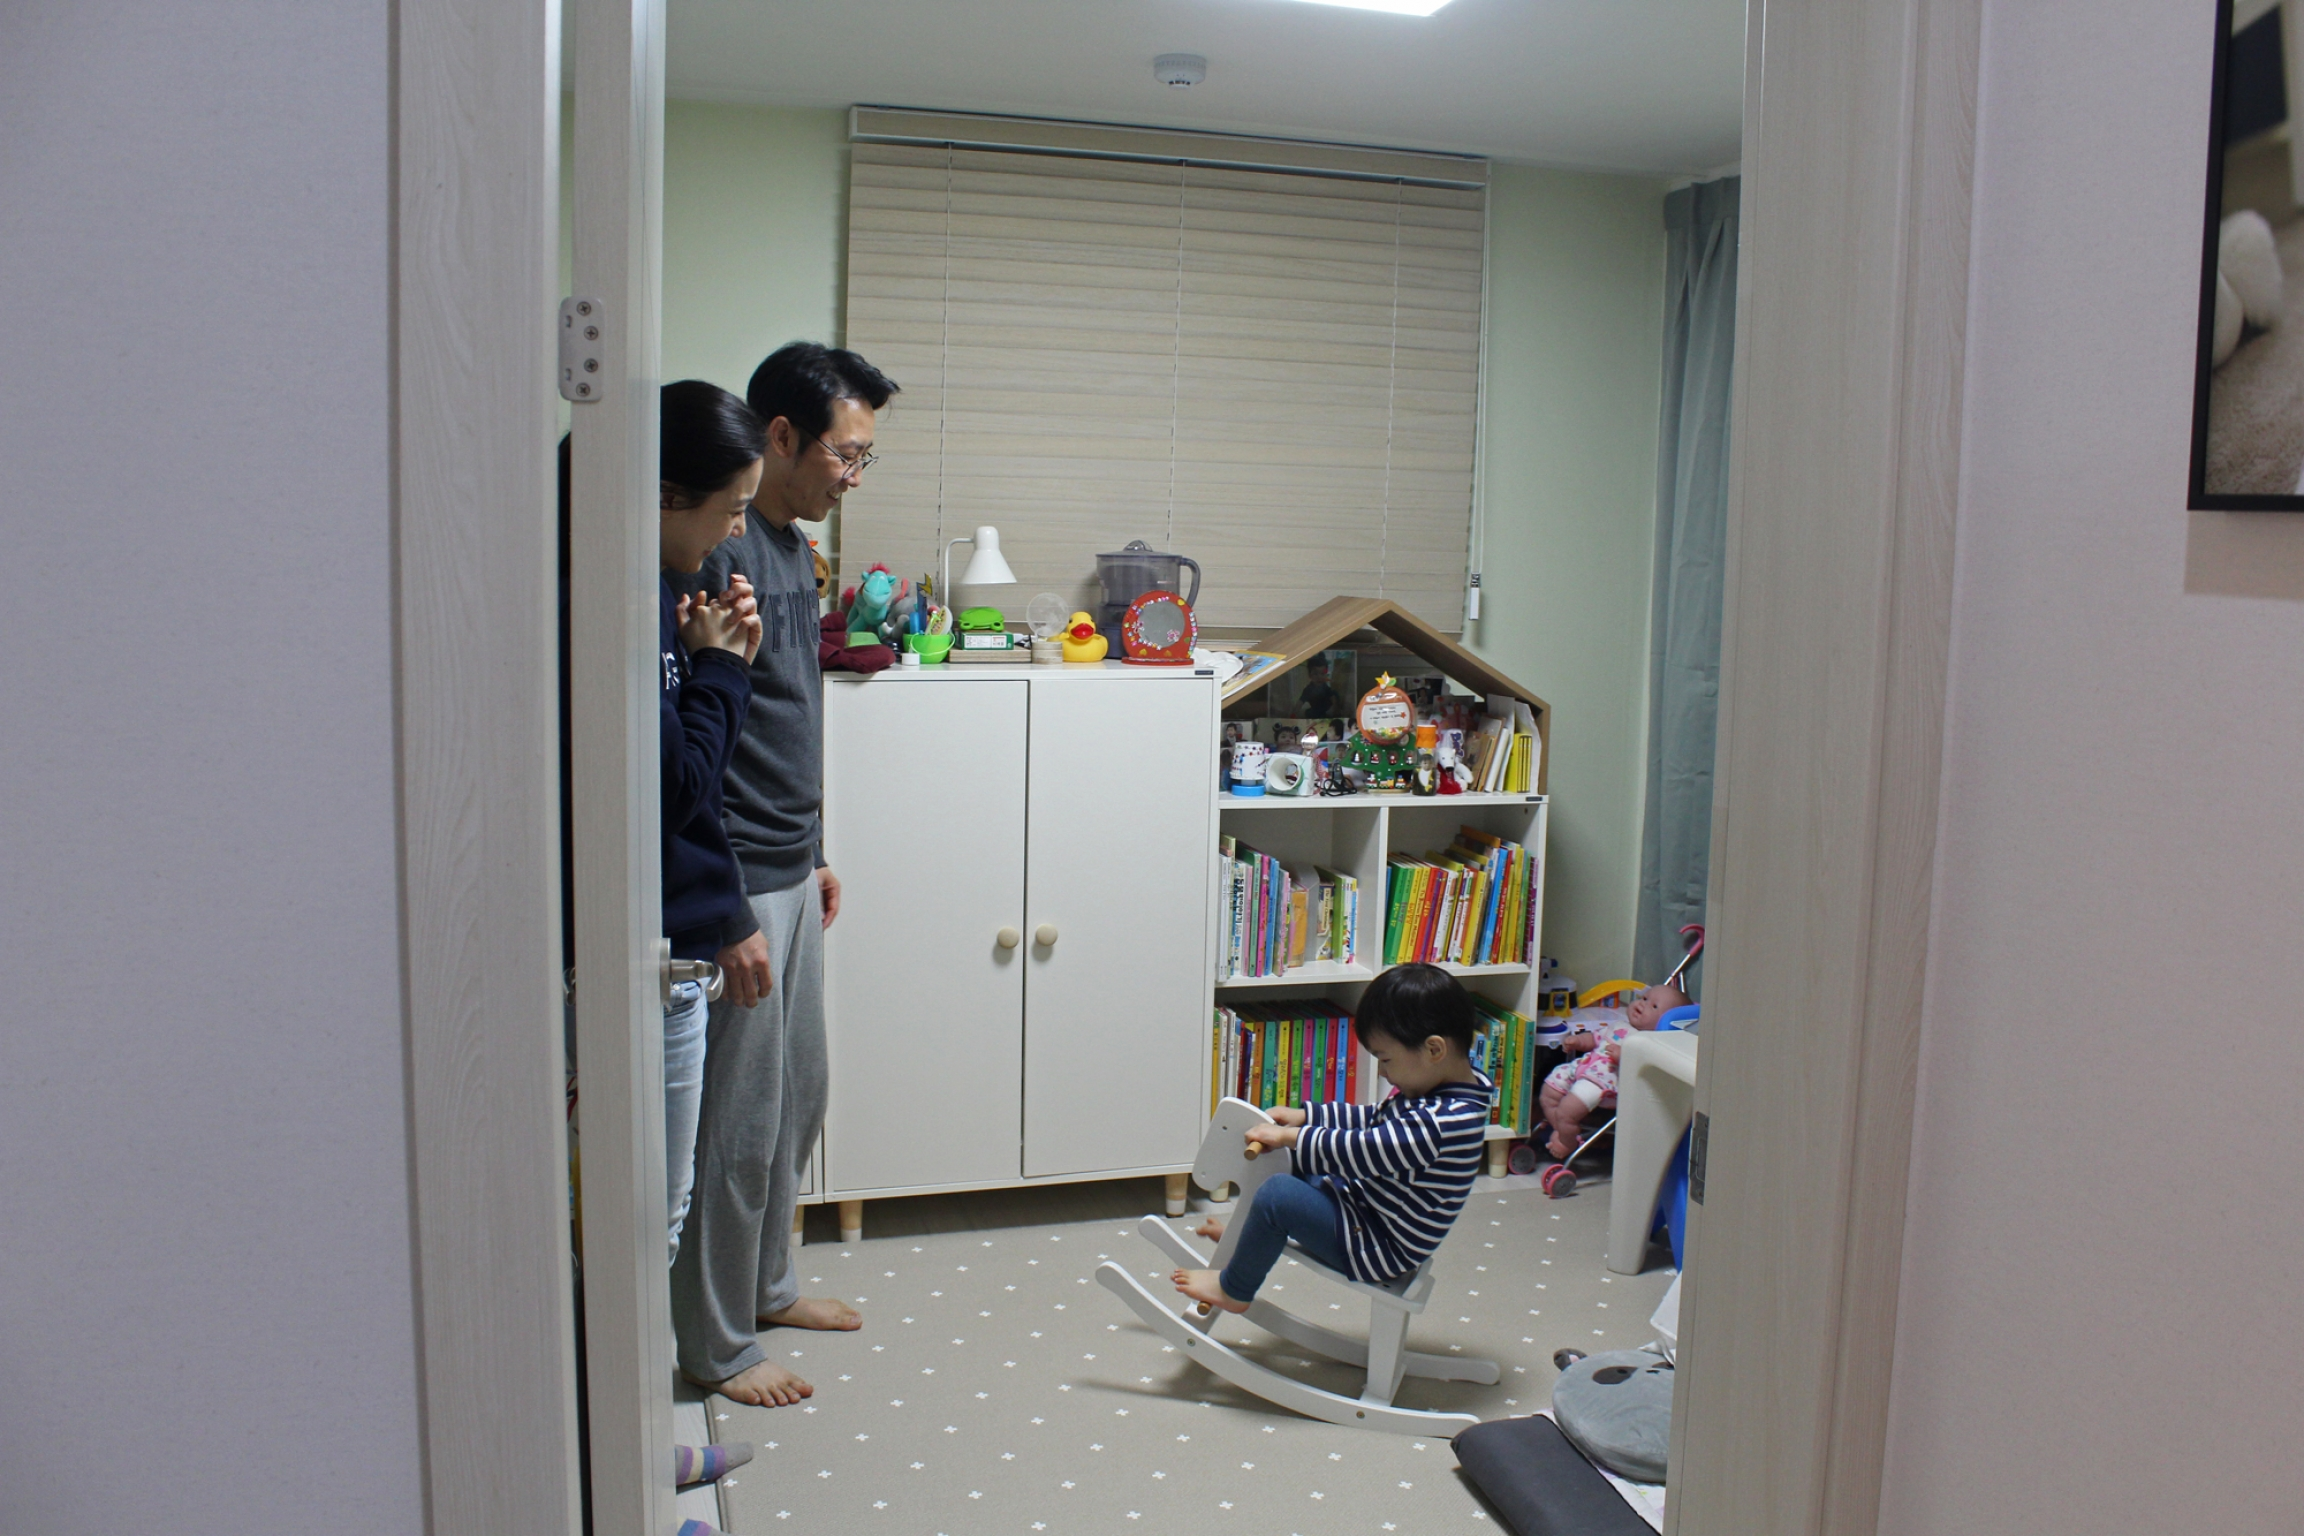 Seo Ji-hye and Cho Sung-won watch as their two-year-old son, Han-sol, rides a rocking horse in his bedroom in Seoul.